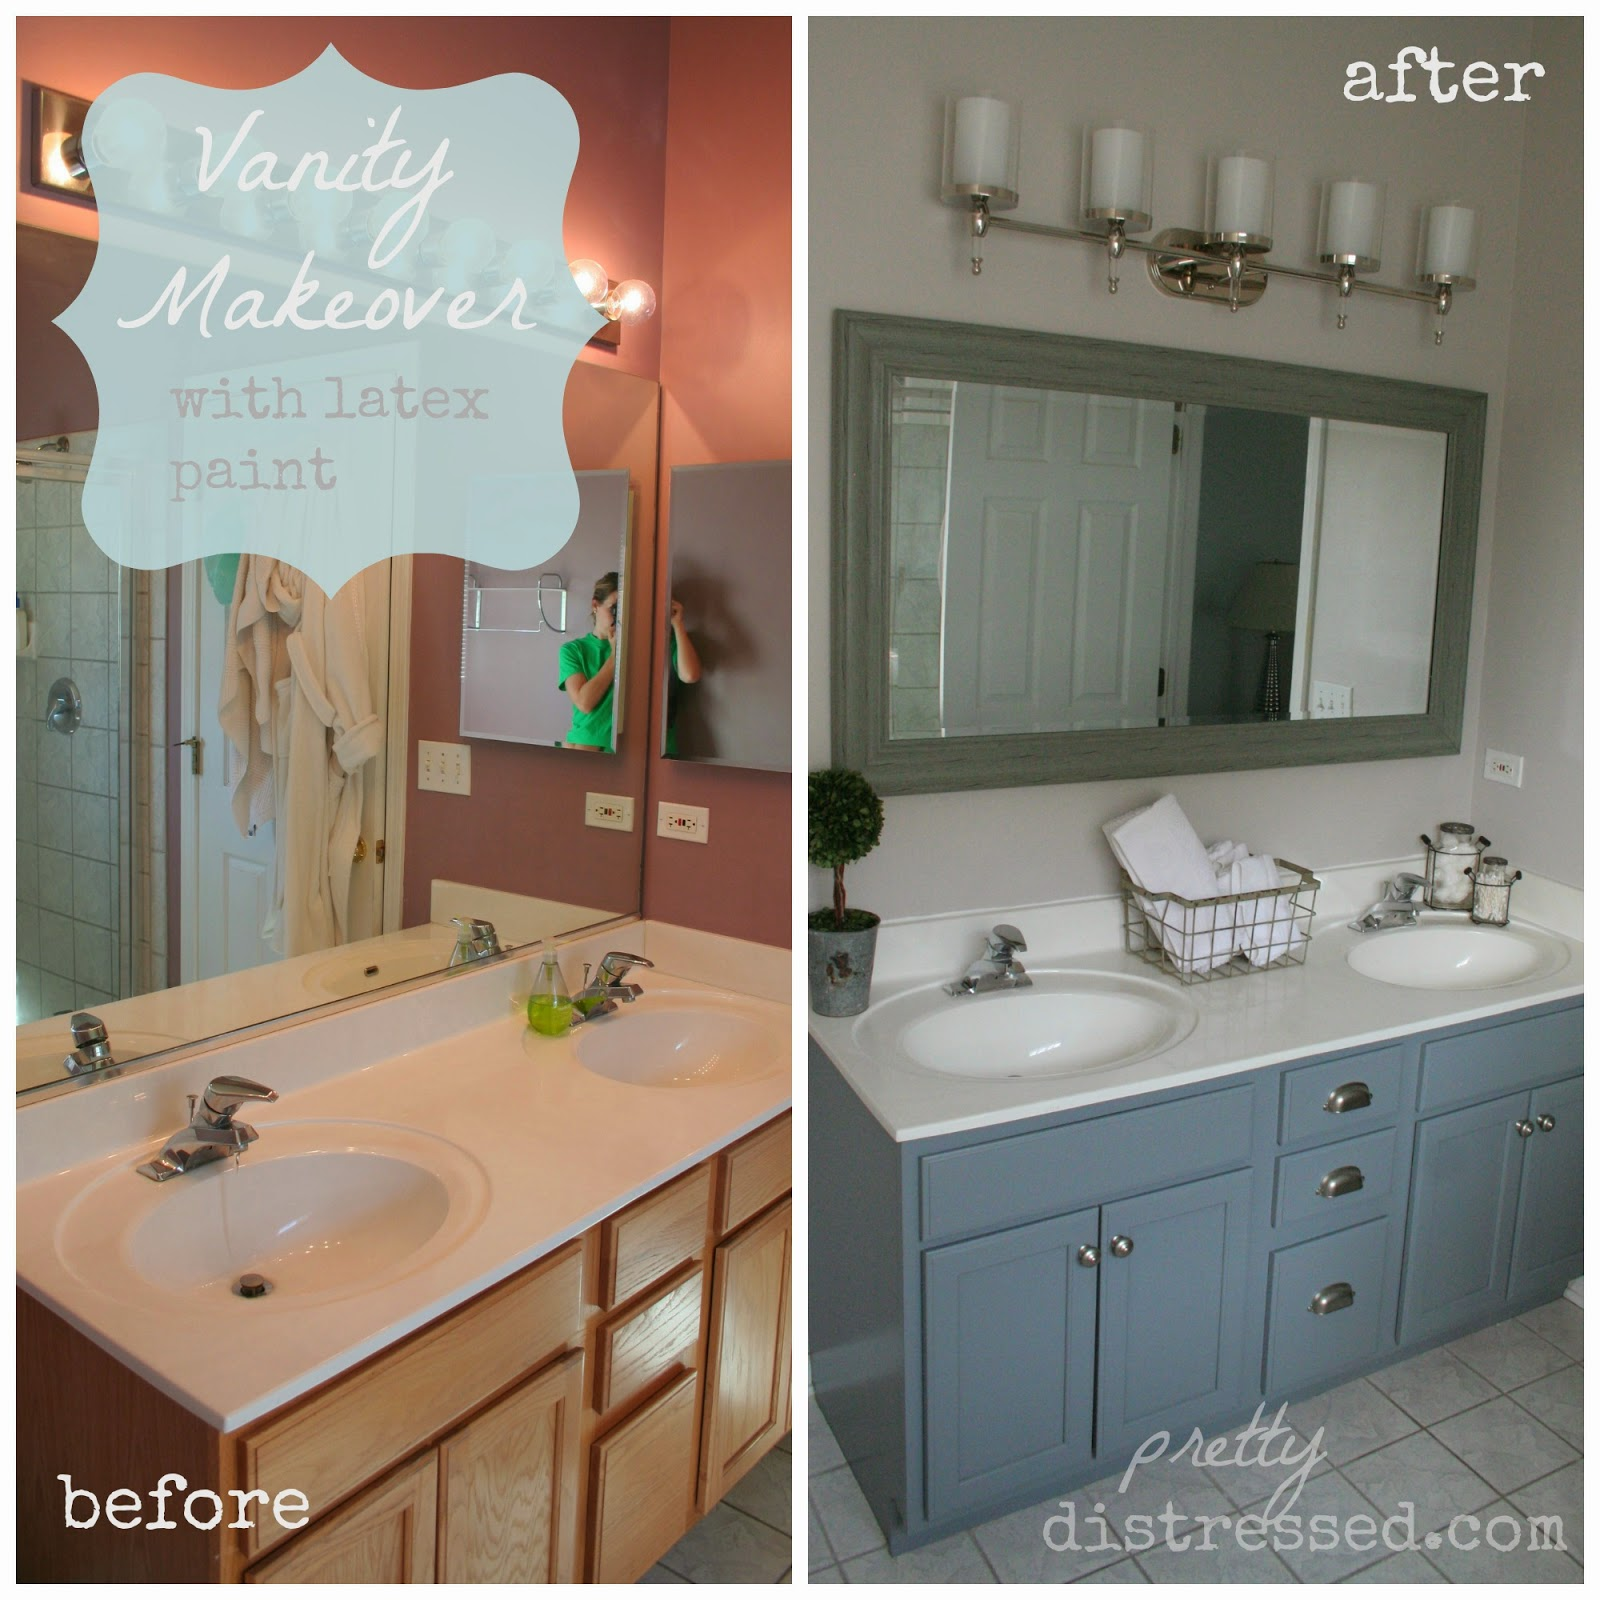 Painted Bathroom Vanity Pretty Distressed Happy 1st Birthday